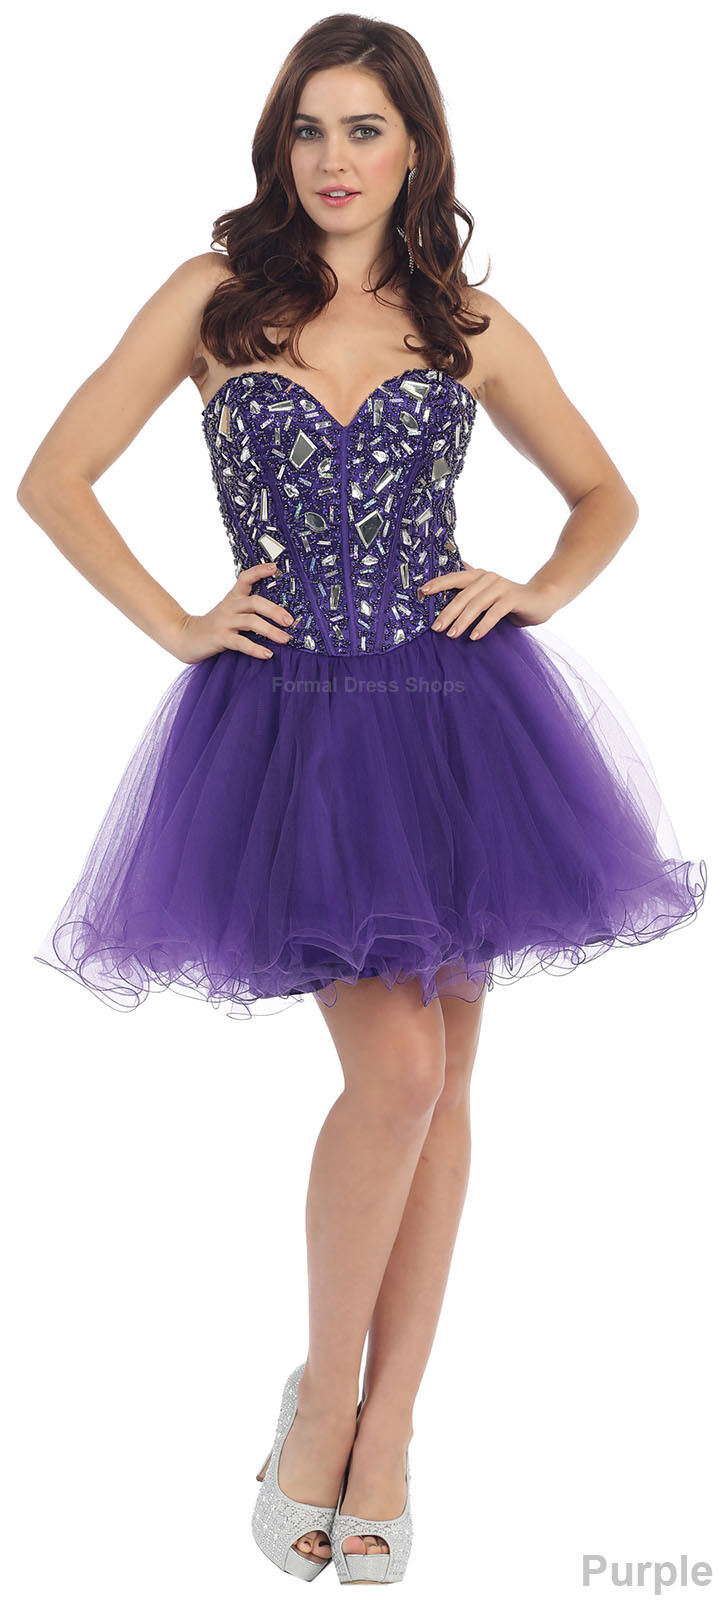 Details about SALE !! SHORT PROM GRADUATION BRIDESMAID HOMECOMING + PLUS  SIZE DRESS UNDER $100